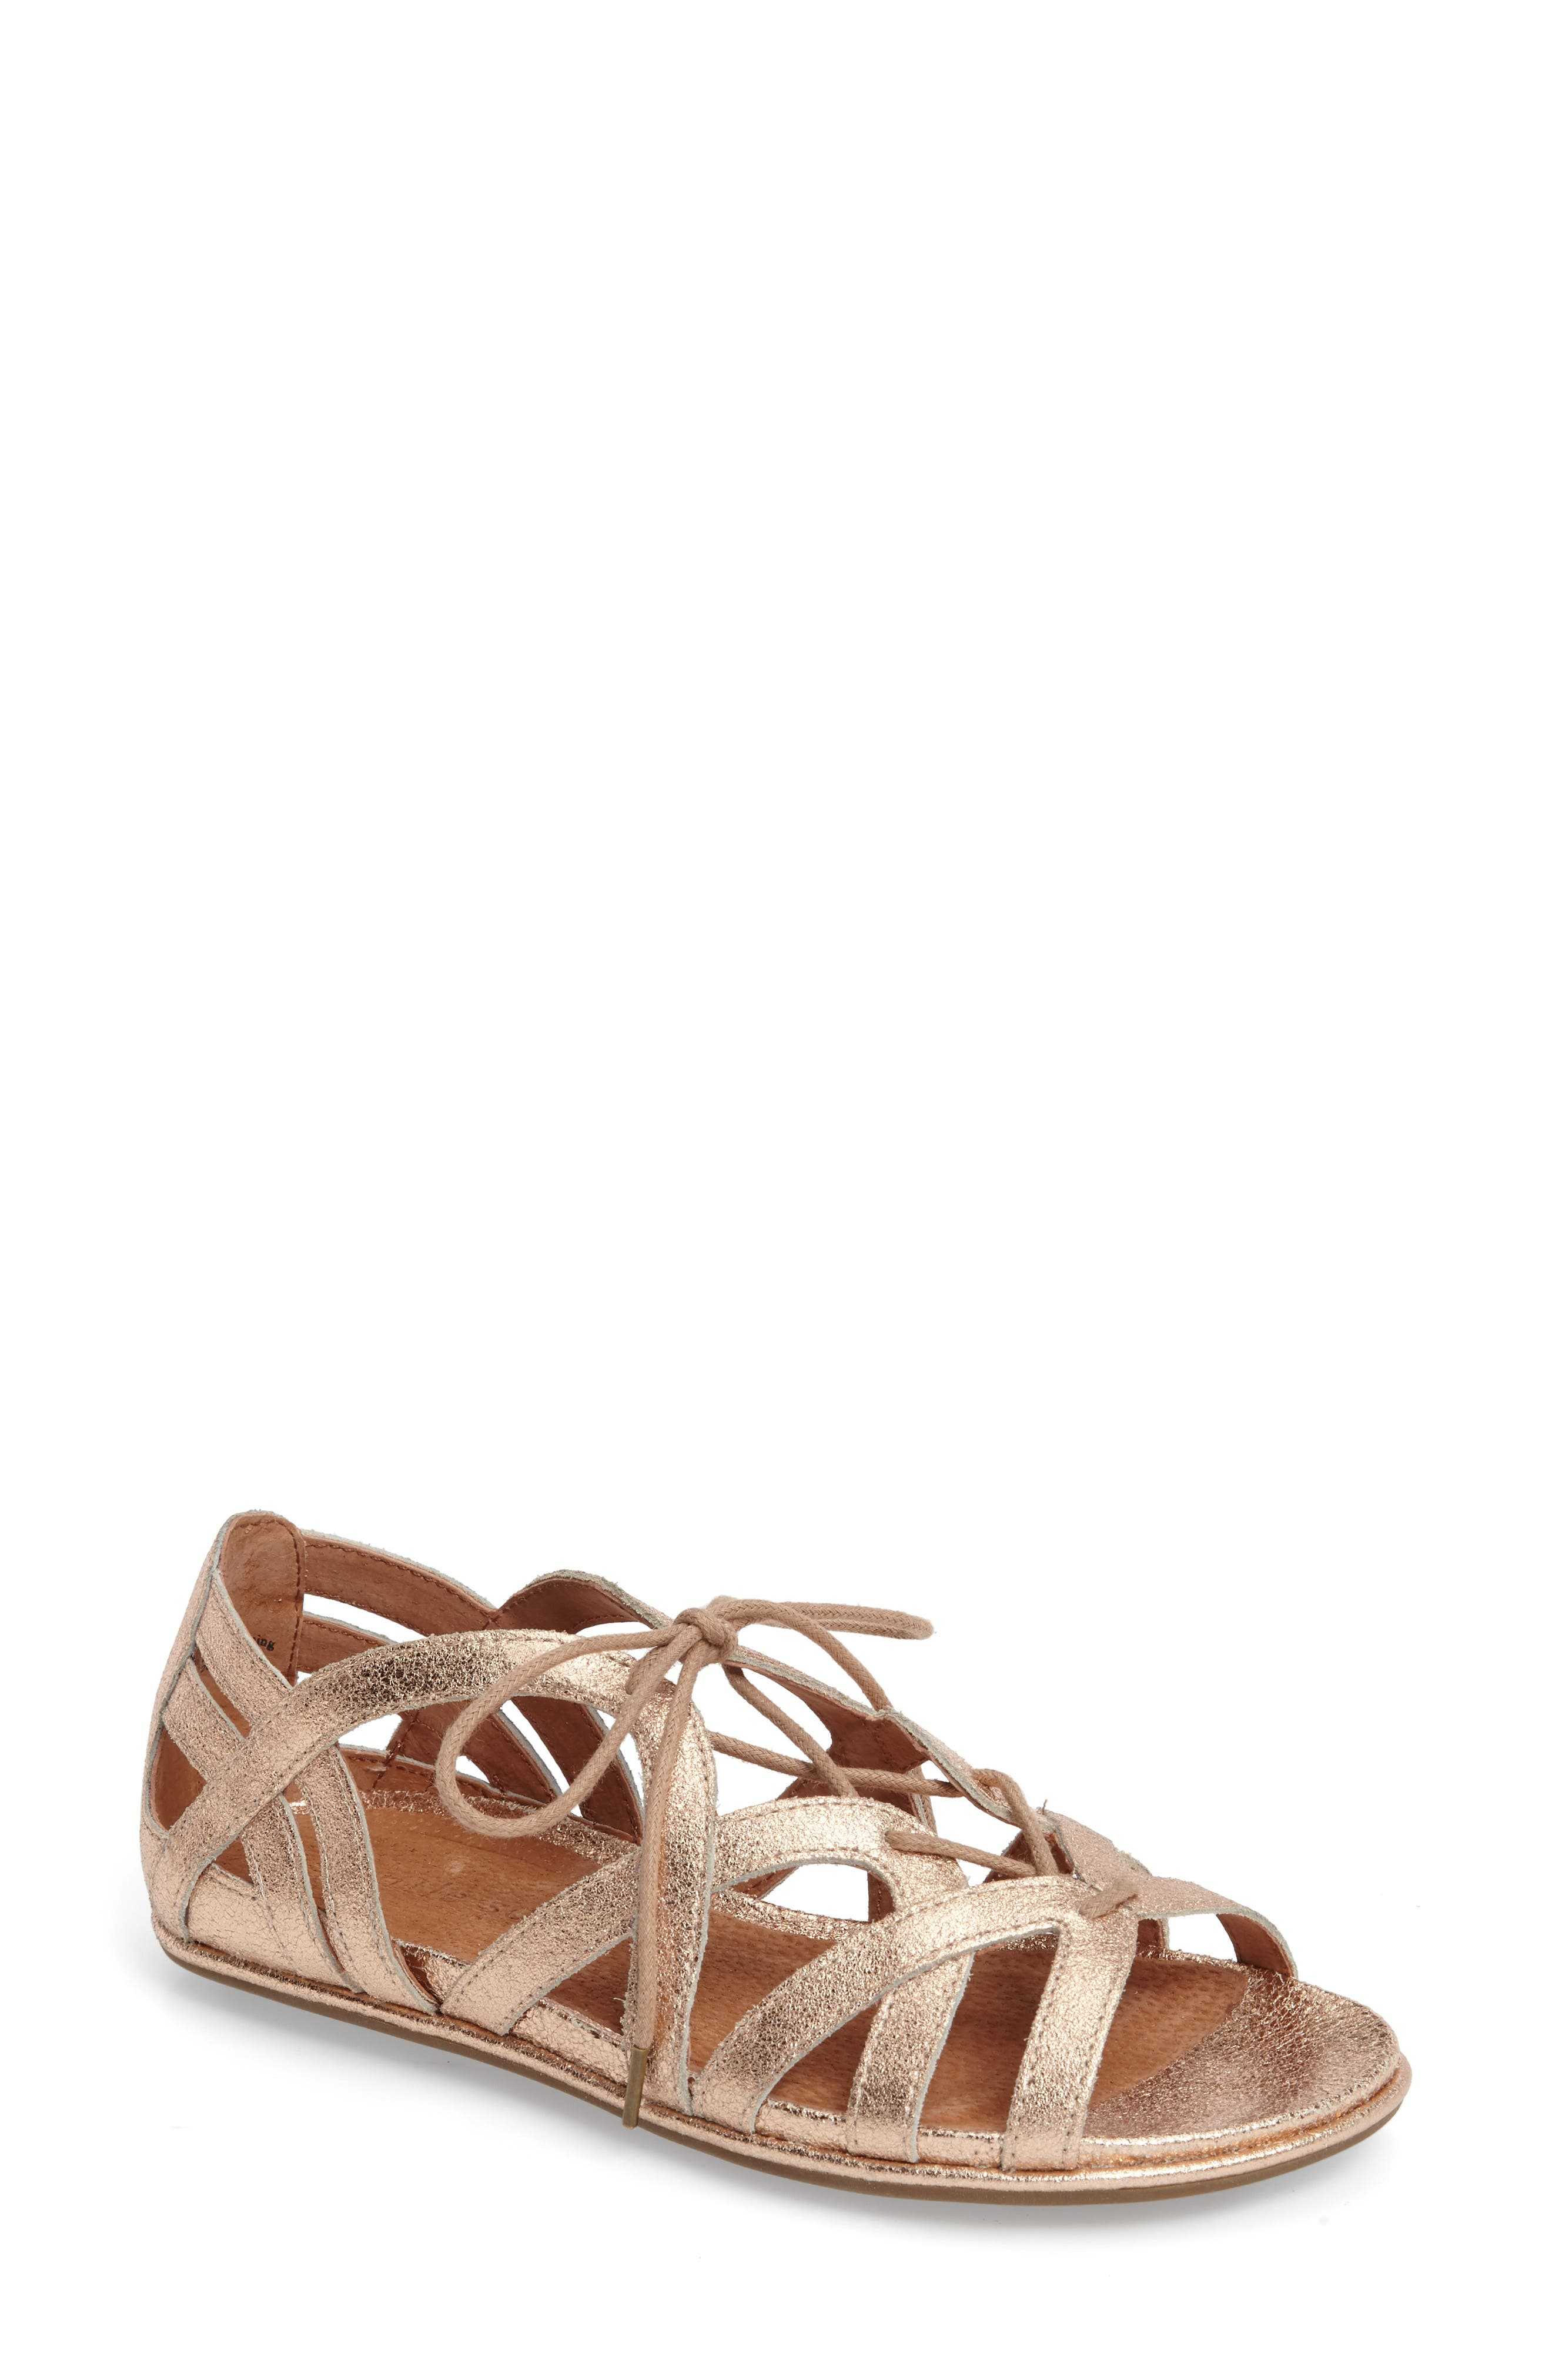 Main Image - Gentle Souls 'Orly' Lace-Up Sandal (Women) (Nordstrom Exclusive)